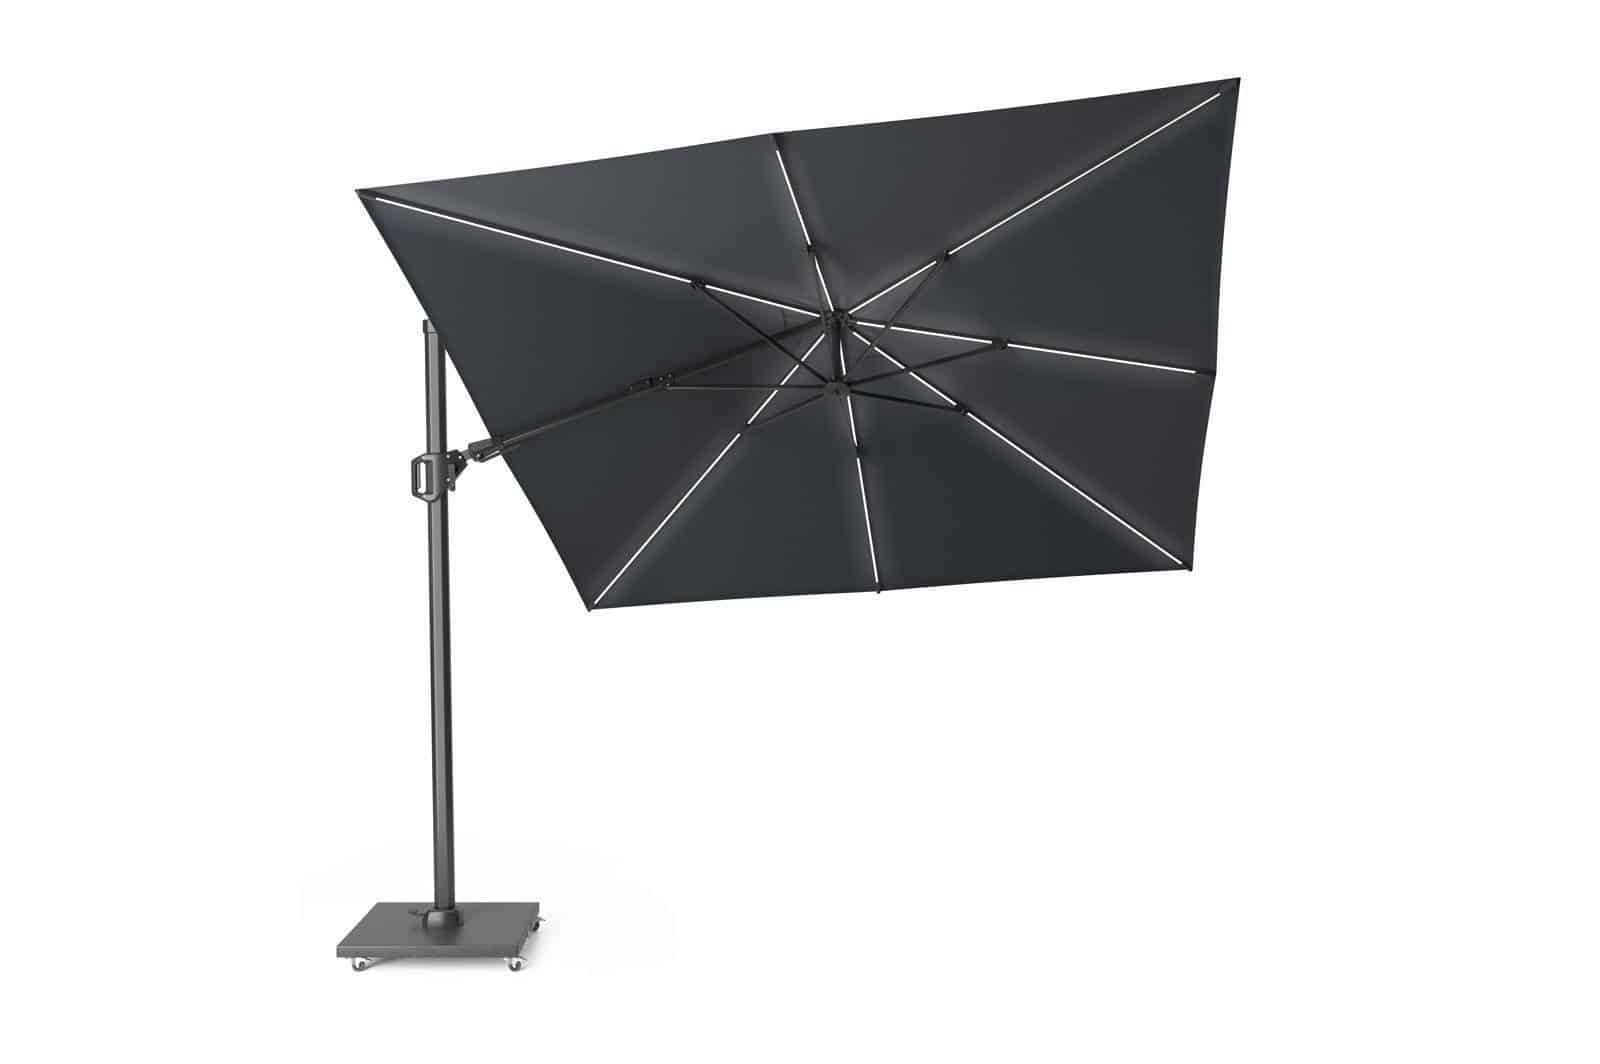 Parasol ogrodowy Challenger T2 GLOW 3 m x 3 m anthracit 300